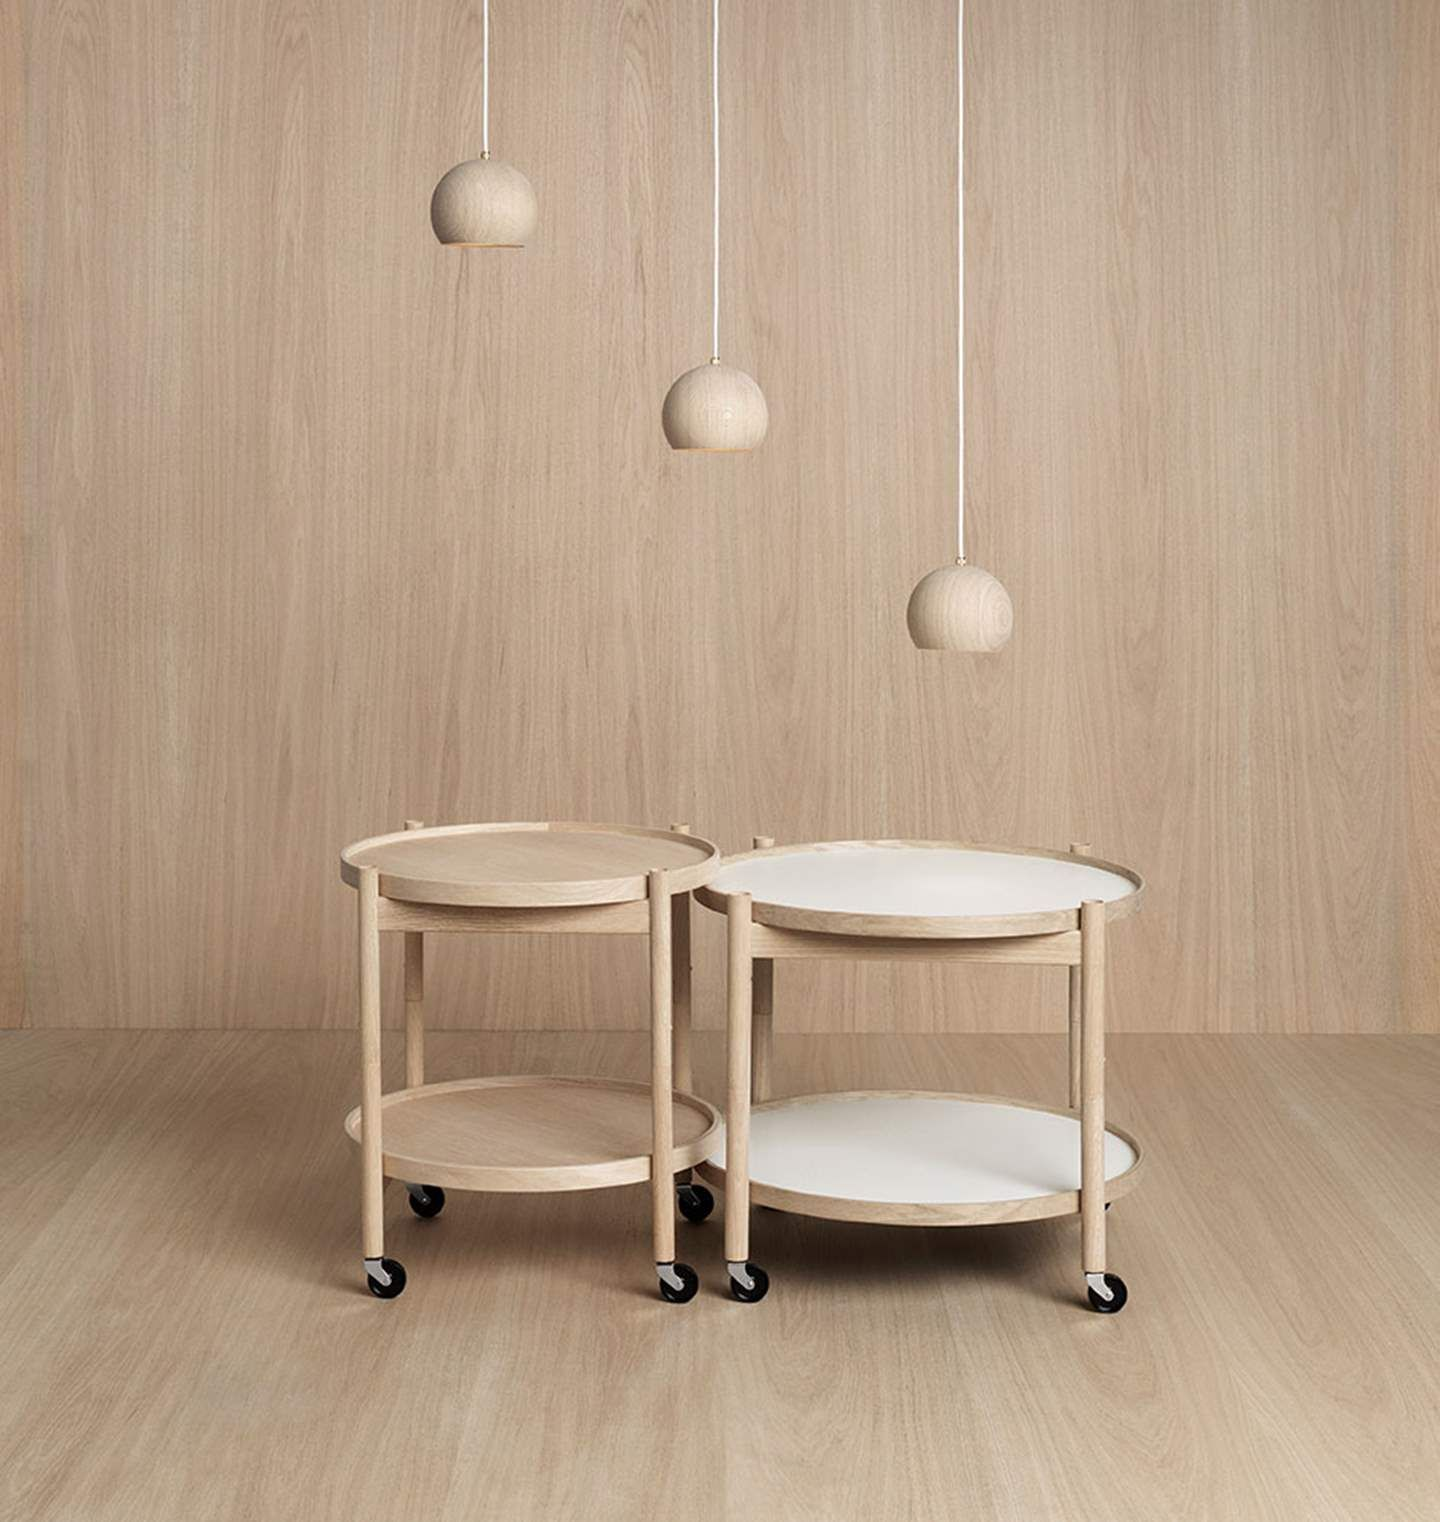 Lune Lamp And Hans Bølling Tray Table By Brdr. Krüger